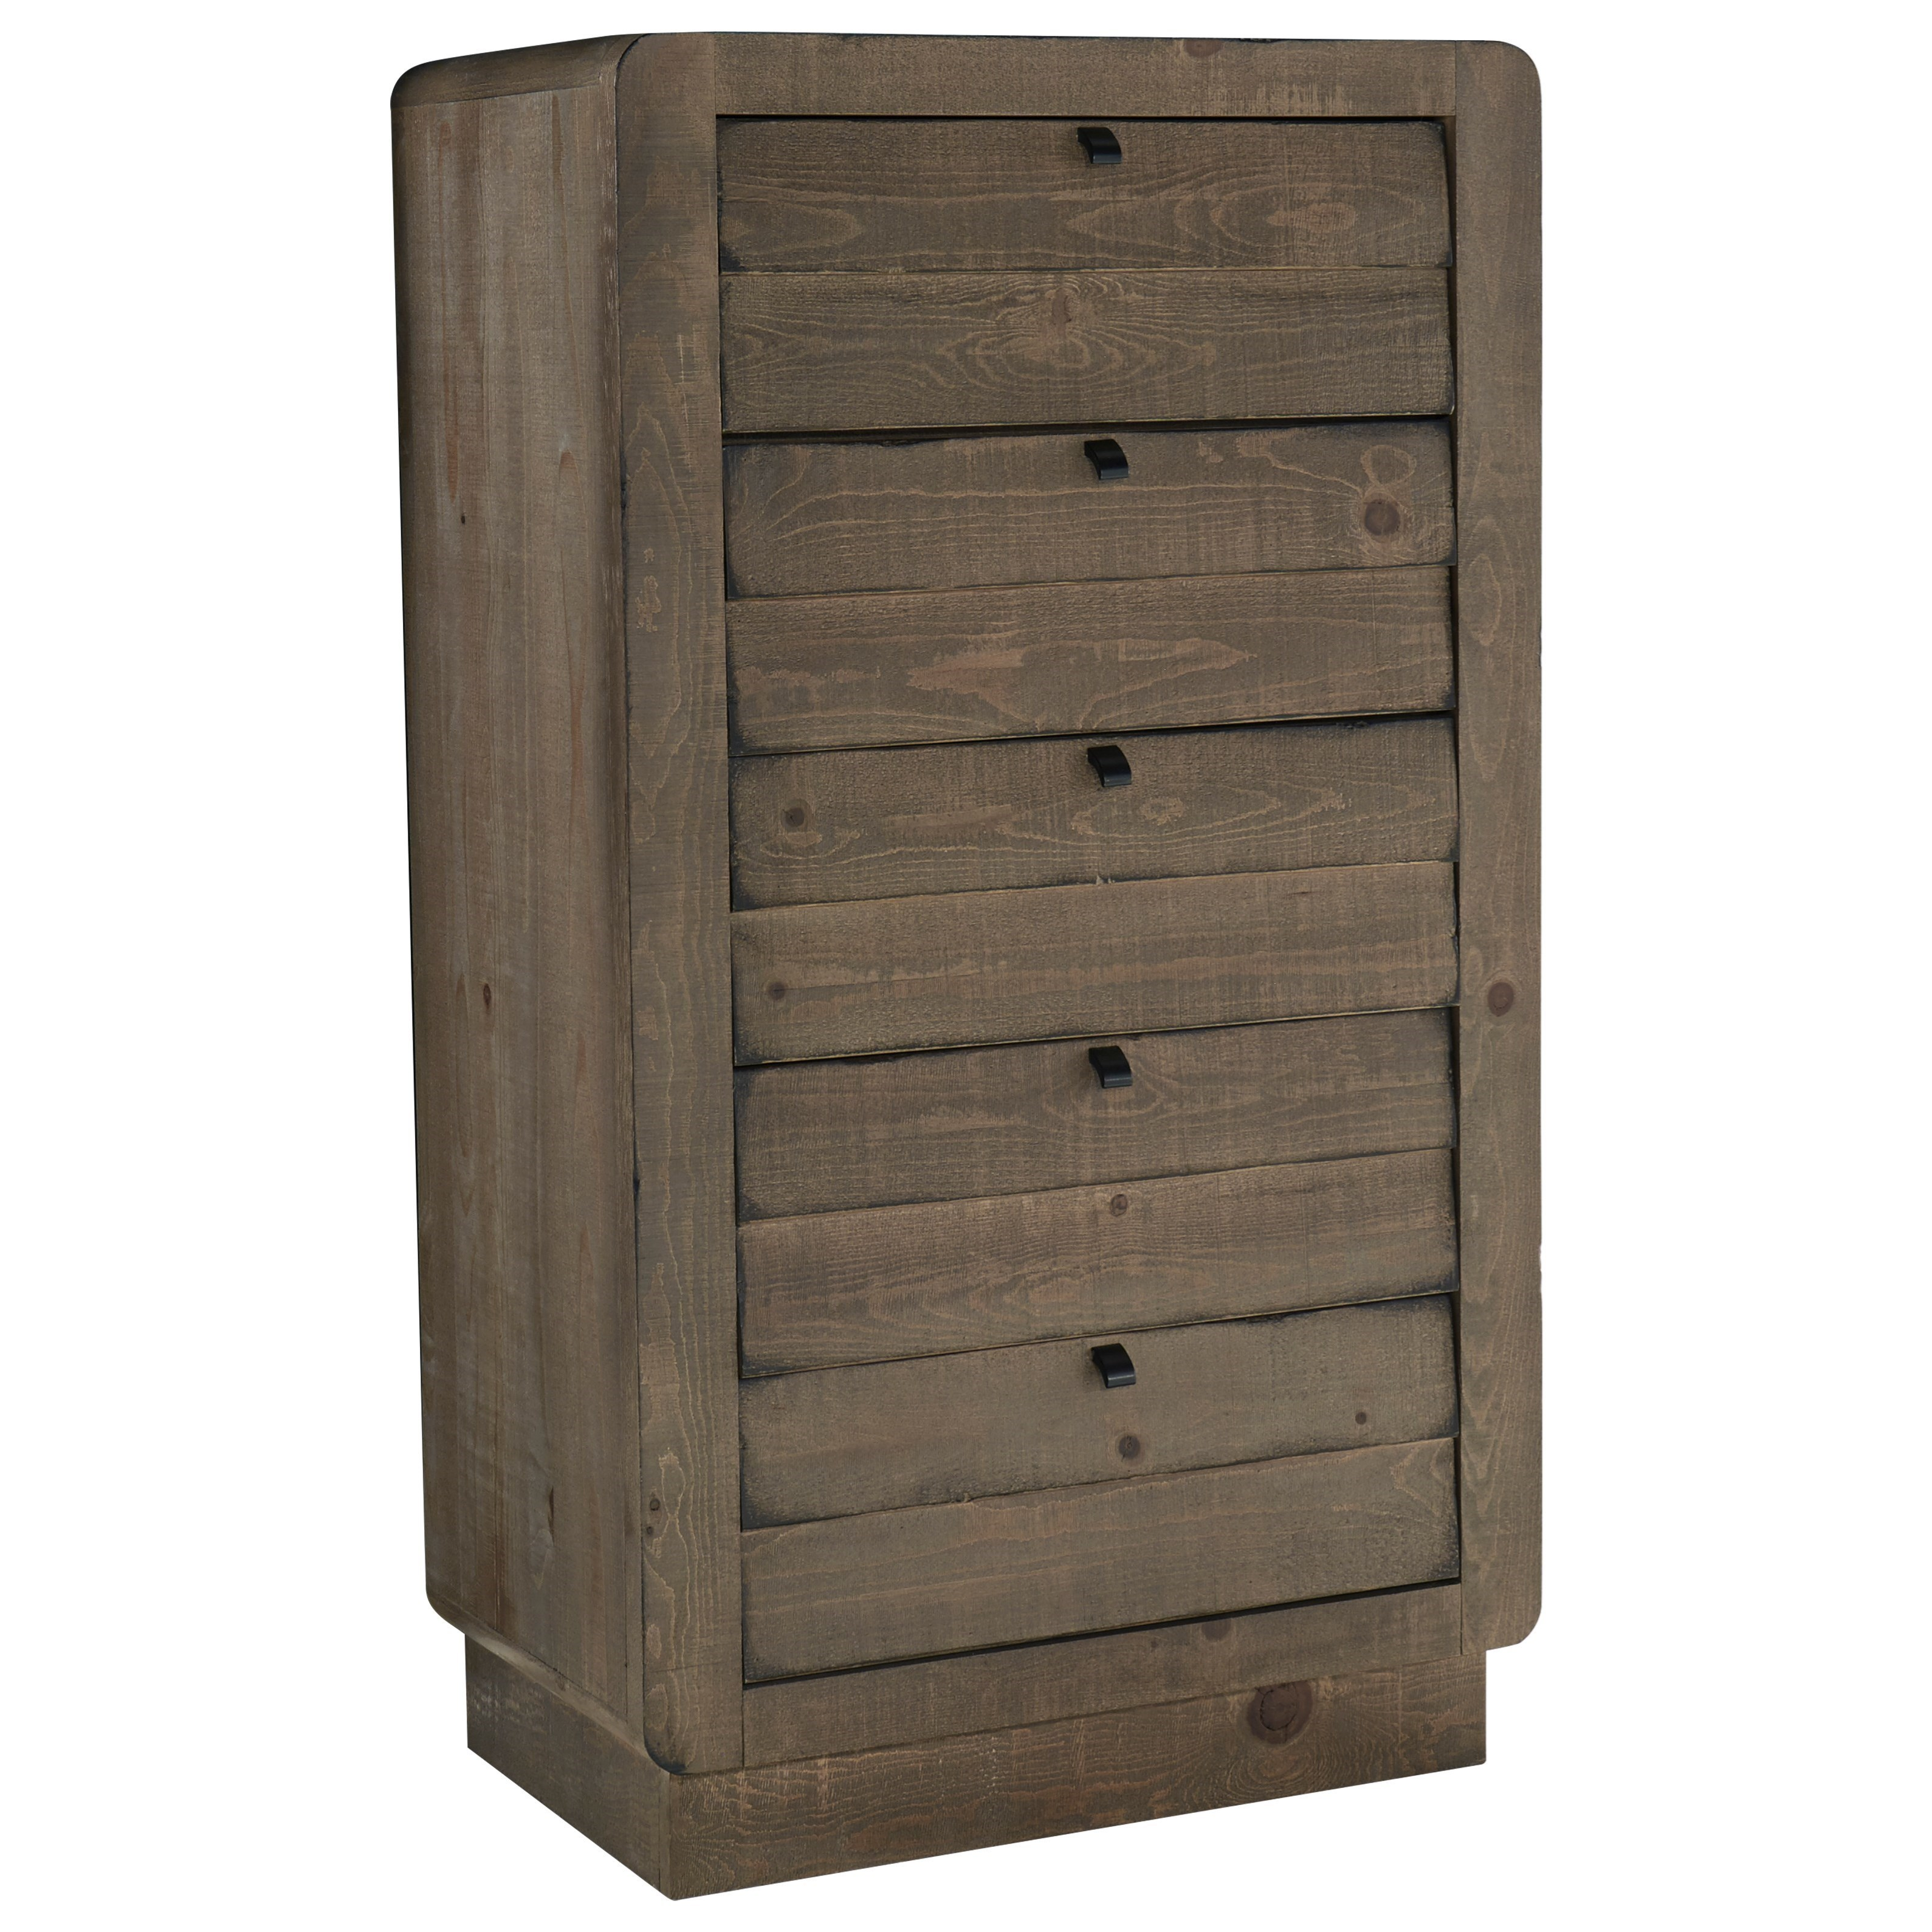 Bliss Mocha Chest of Drawers by Progressive Furniture at Van Hill Furniture